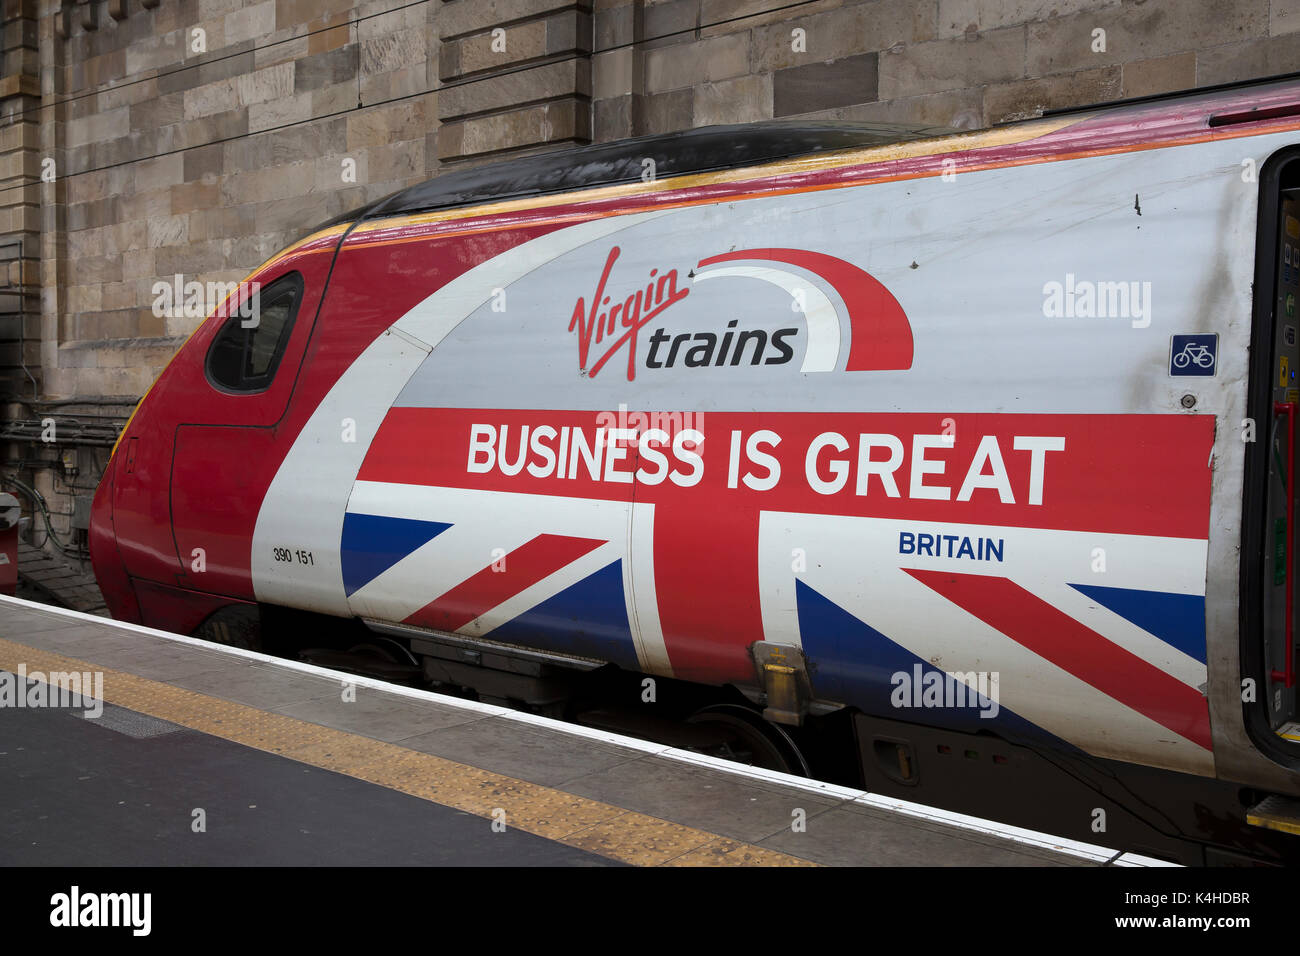 Virgin Pendolino train in Glasgow Central station with an advert Virgin trains, Business is Great Britain - Stock Image